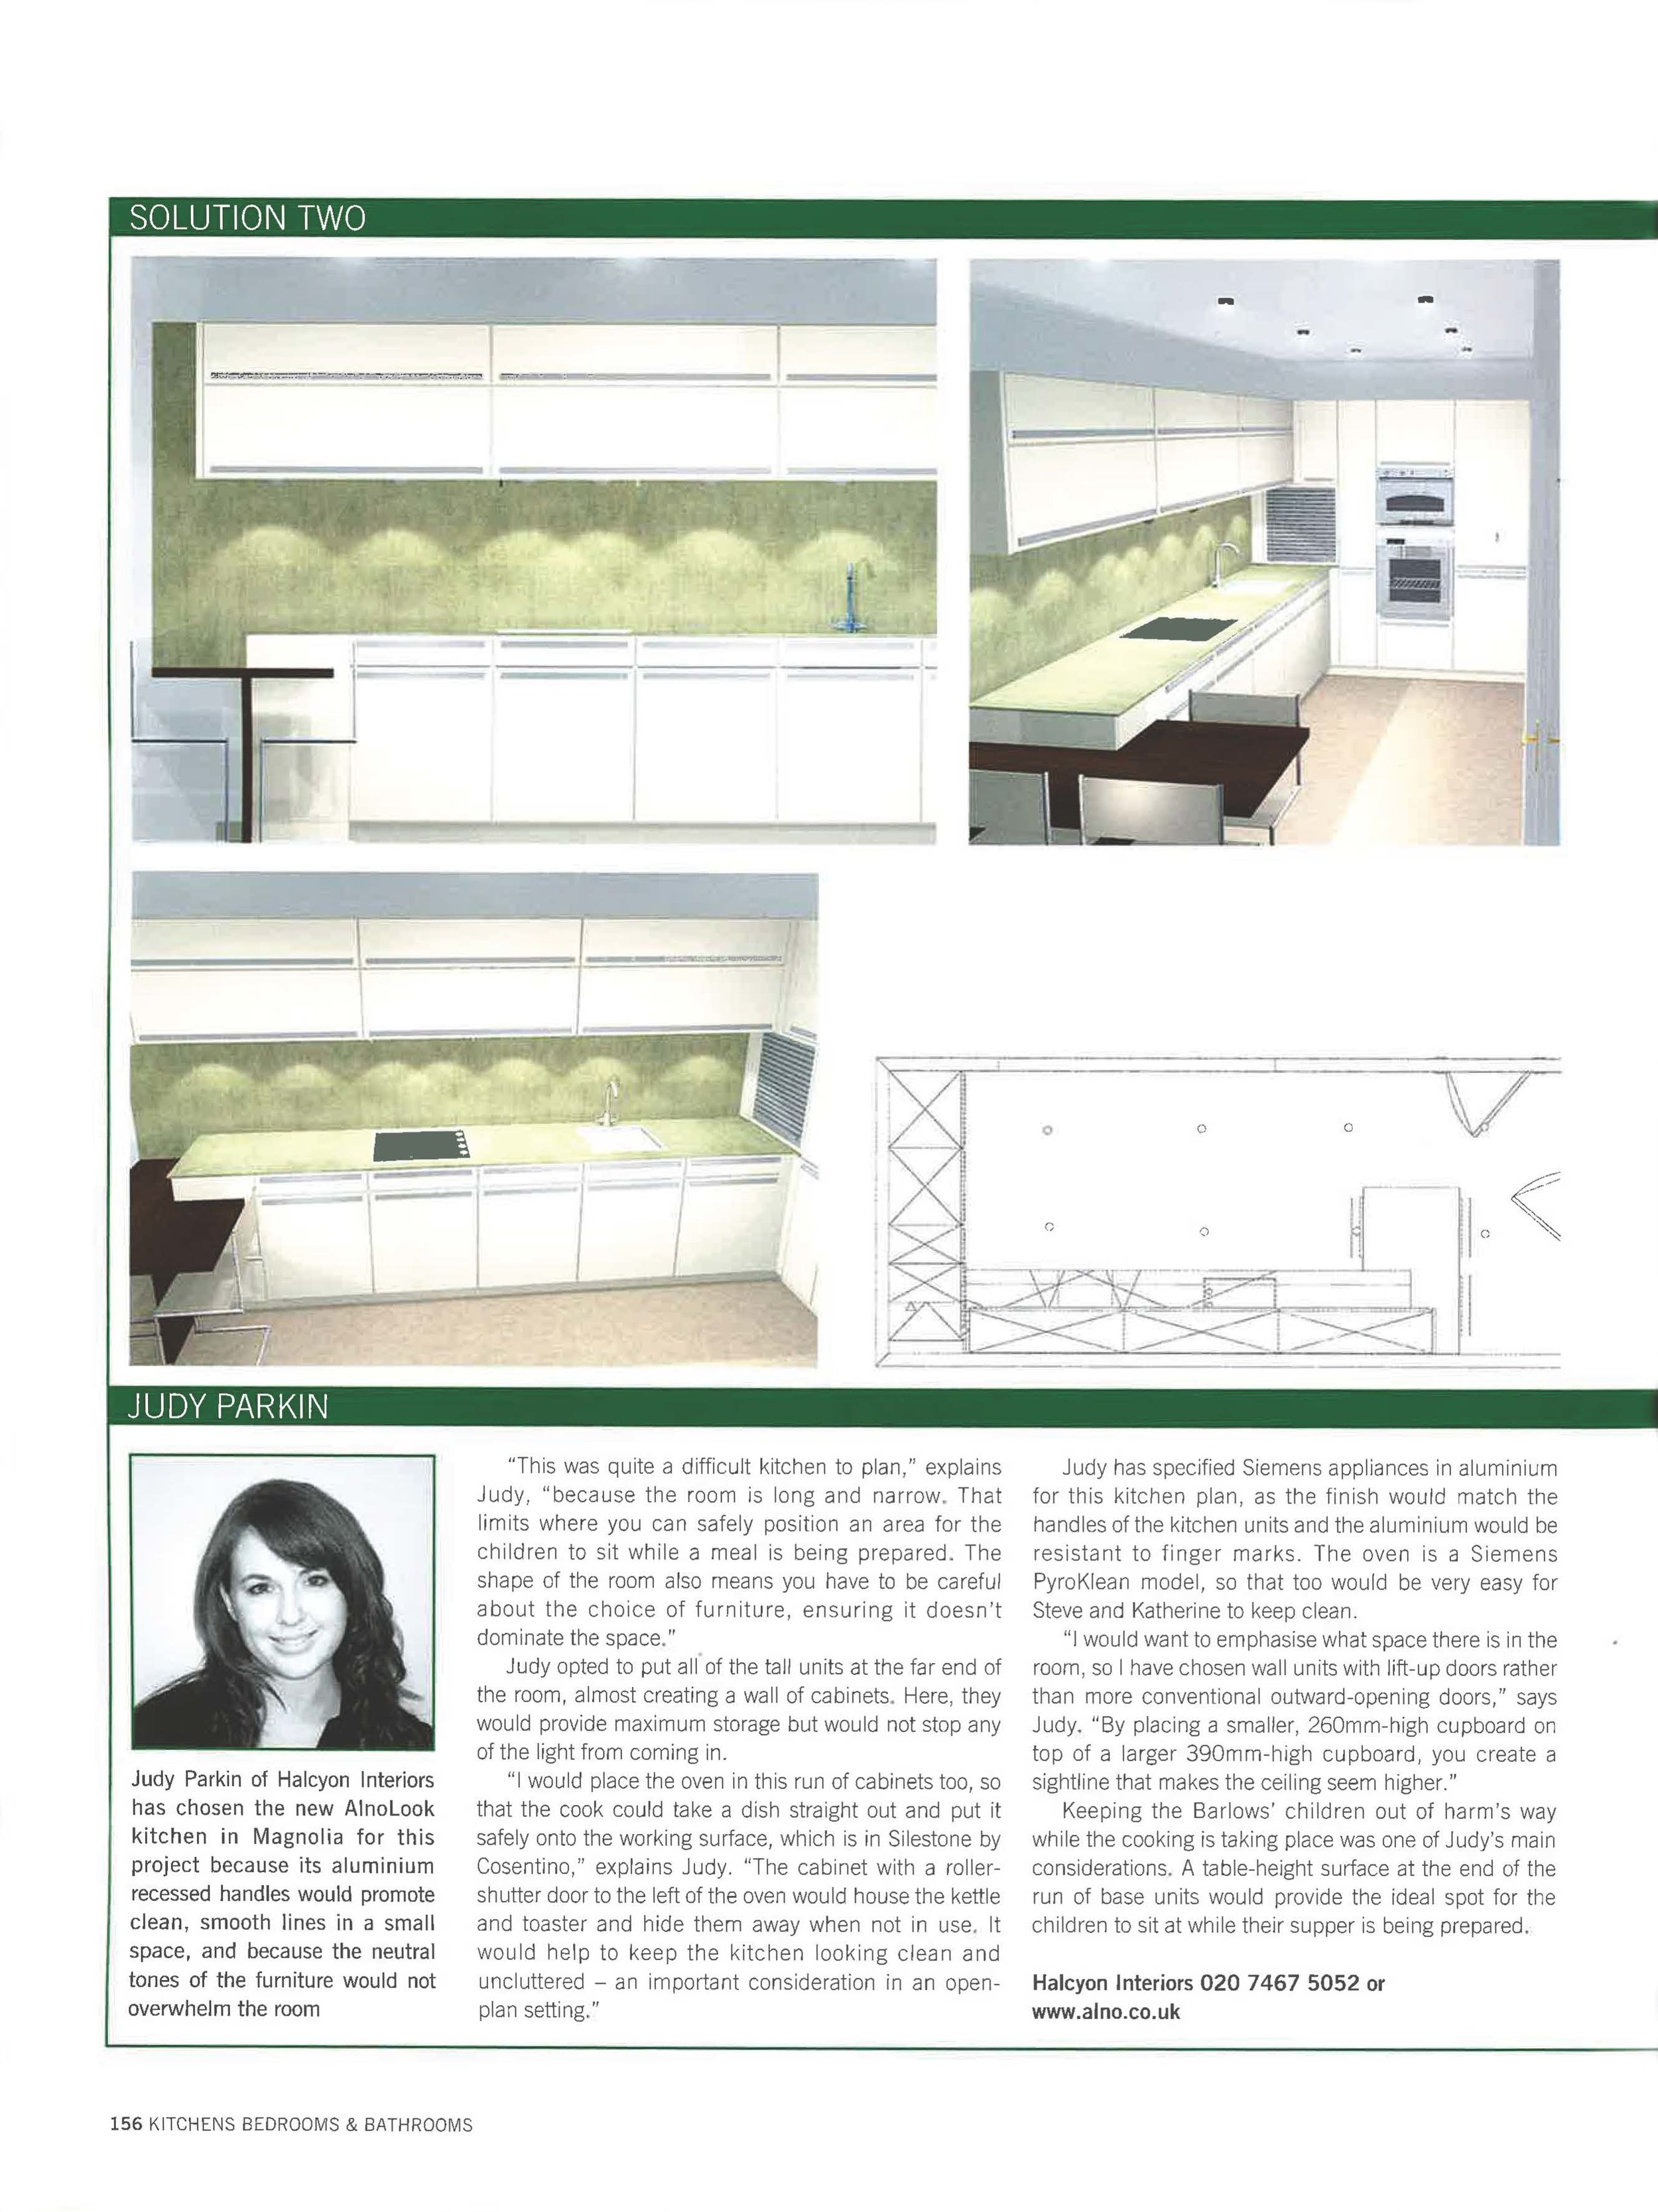 KBB article page 2 of 3.jpg